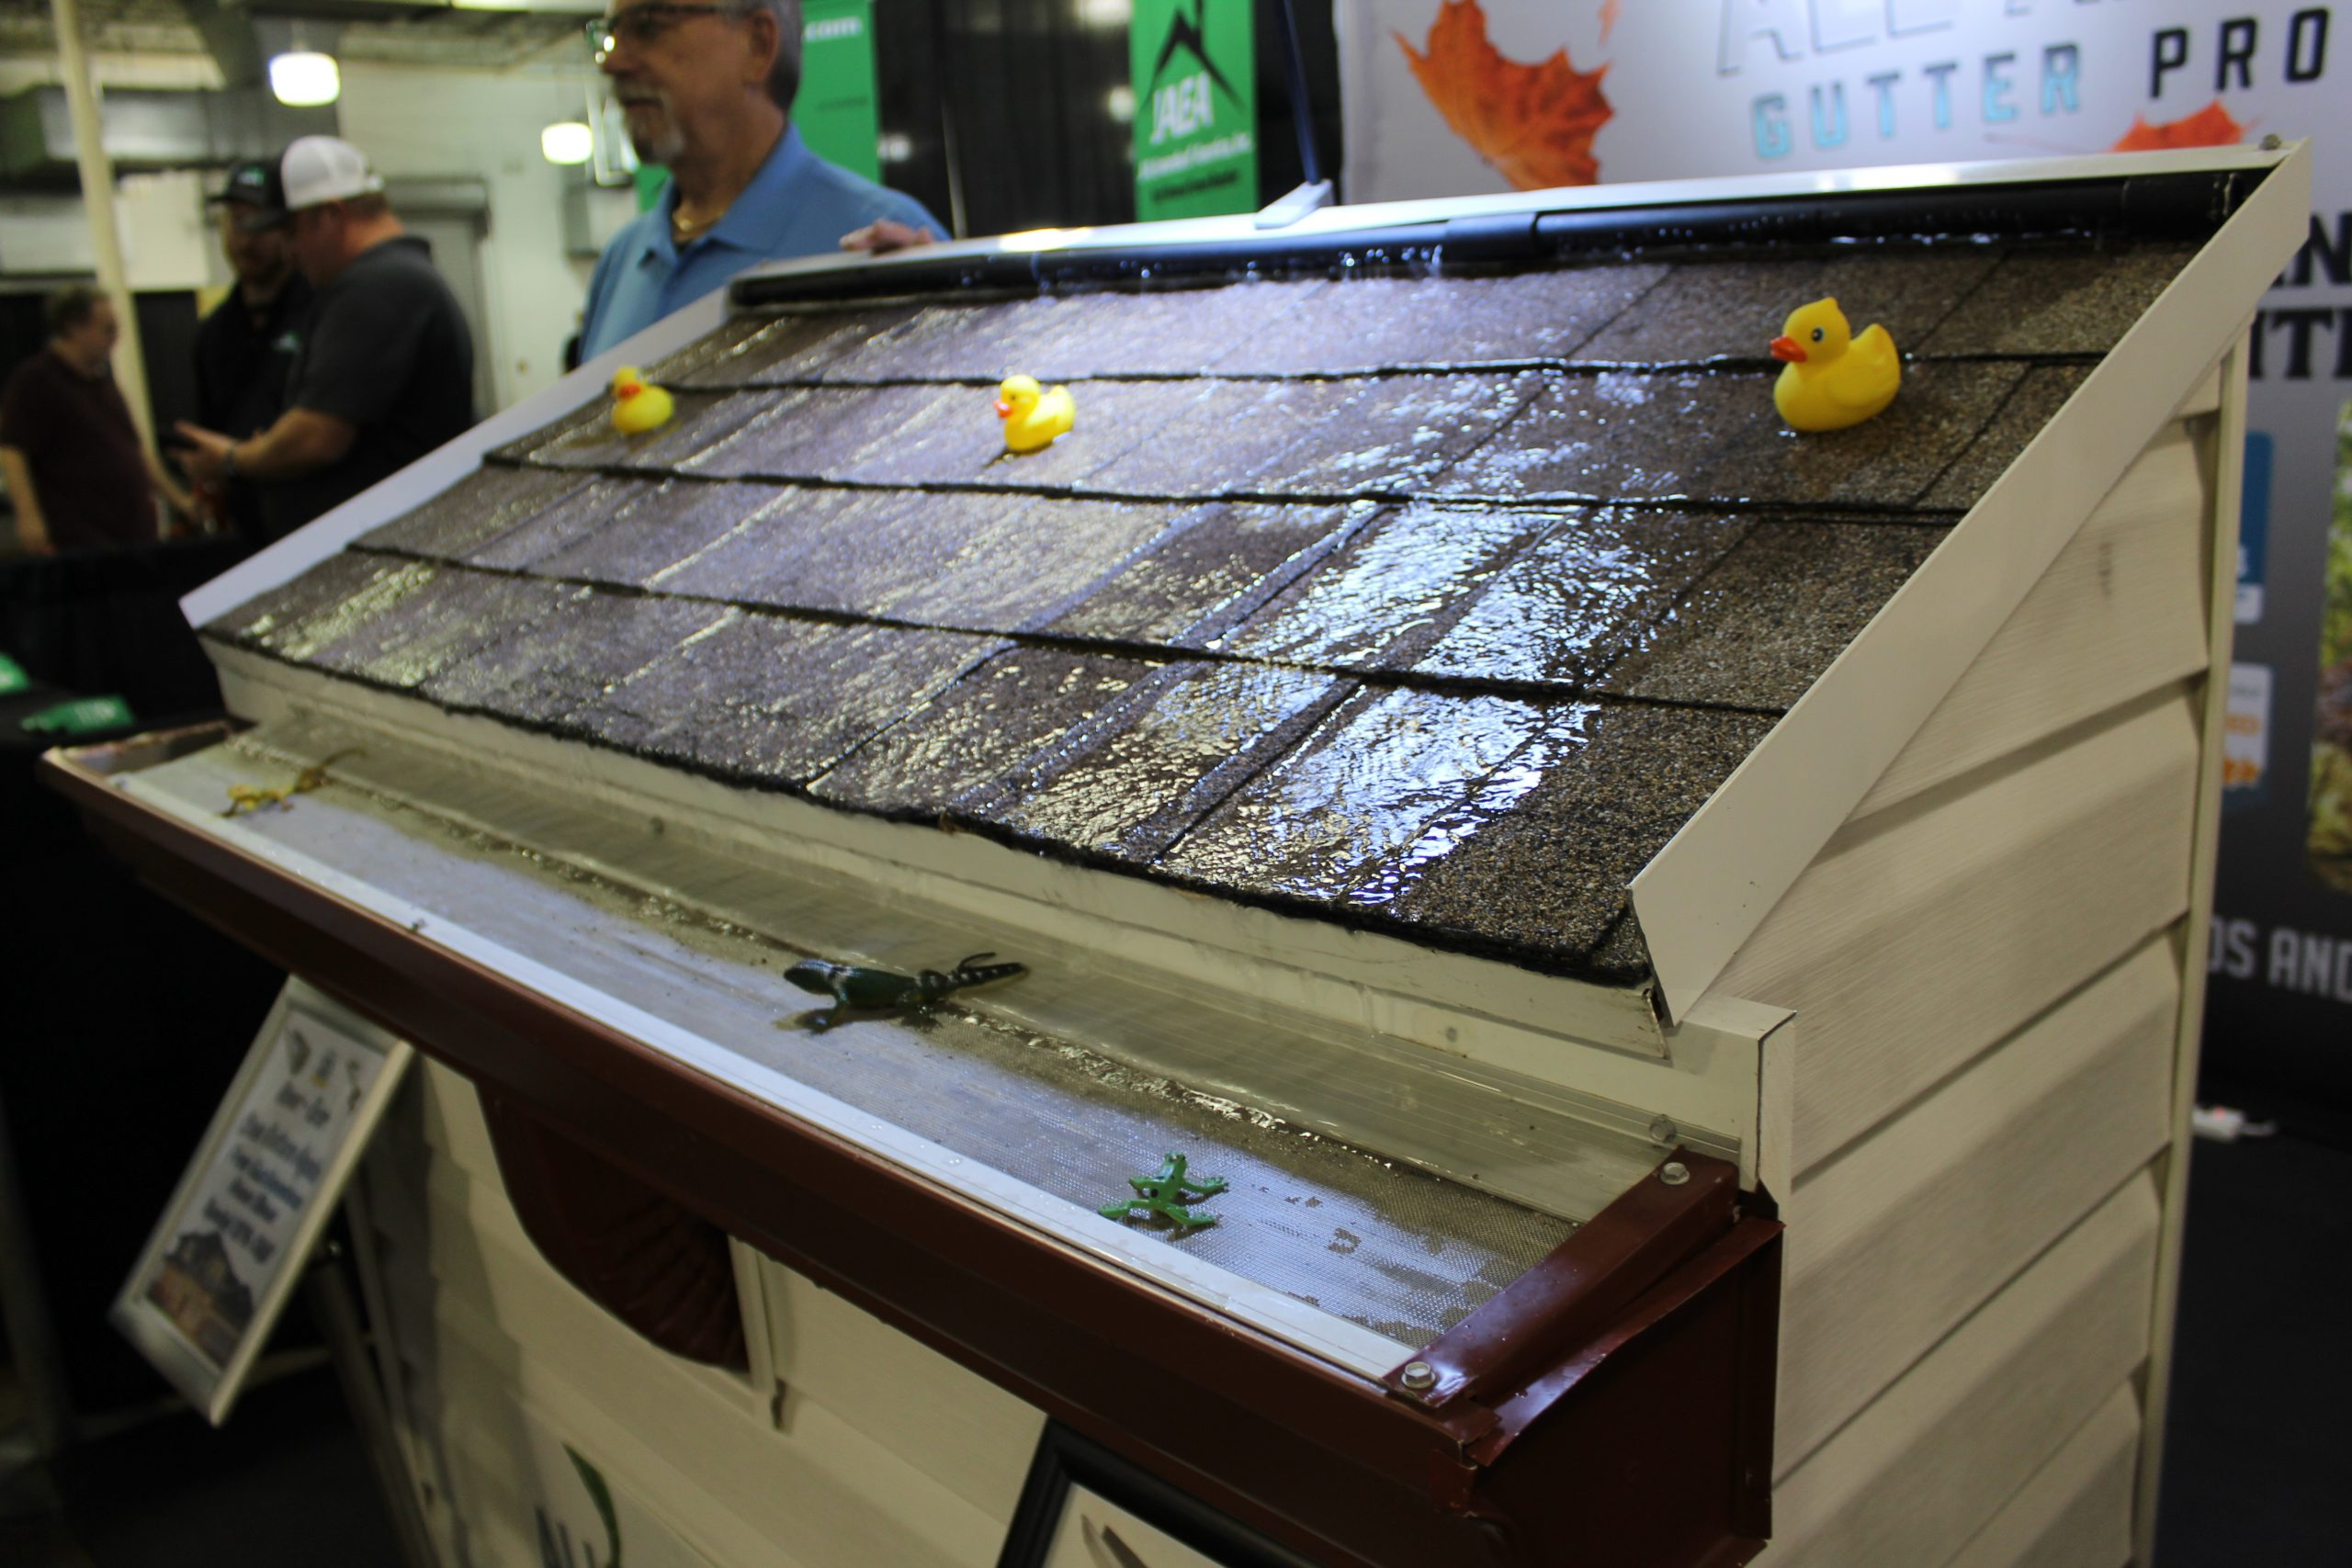 All American Gutter Protection at Jacksonville Home & Garden Show